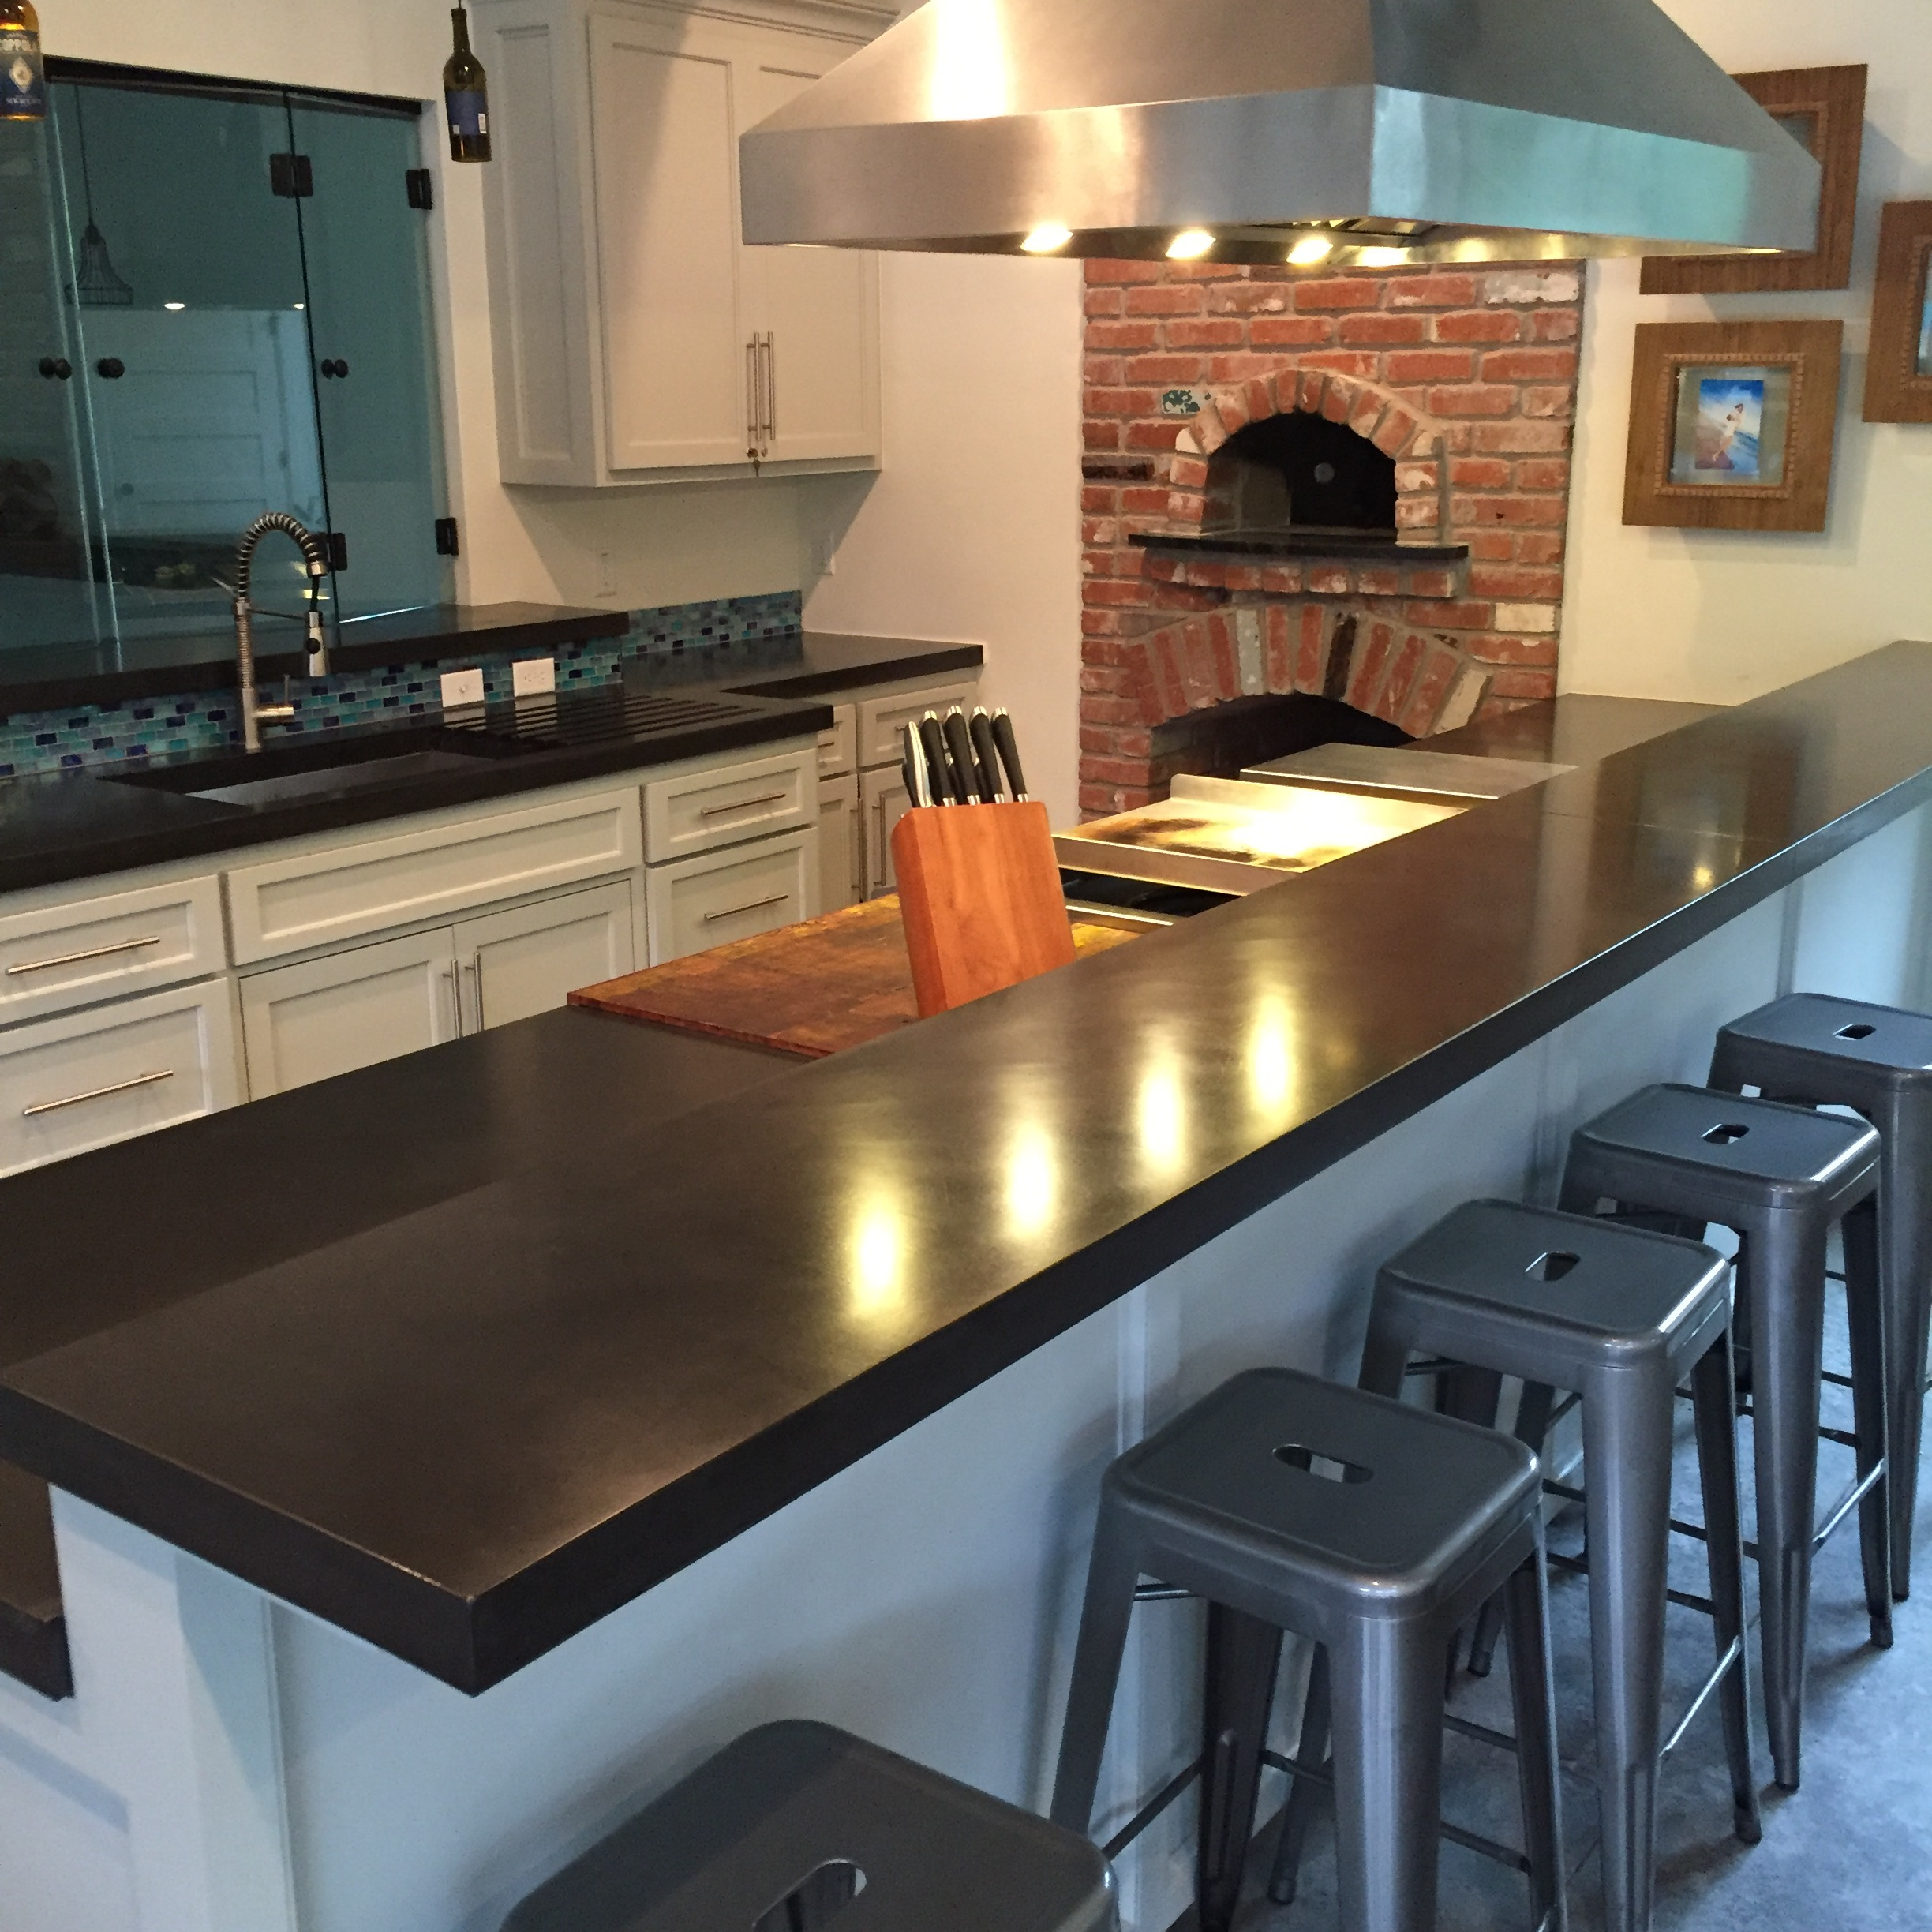 Charcoal Concrete Kitchen Countertops